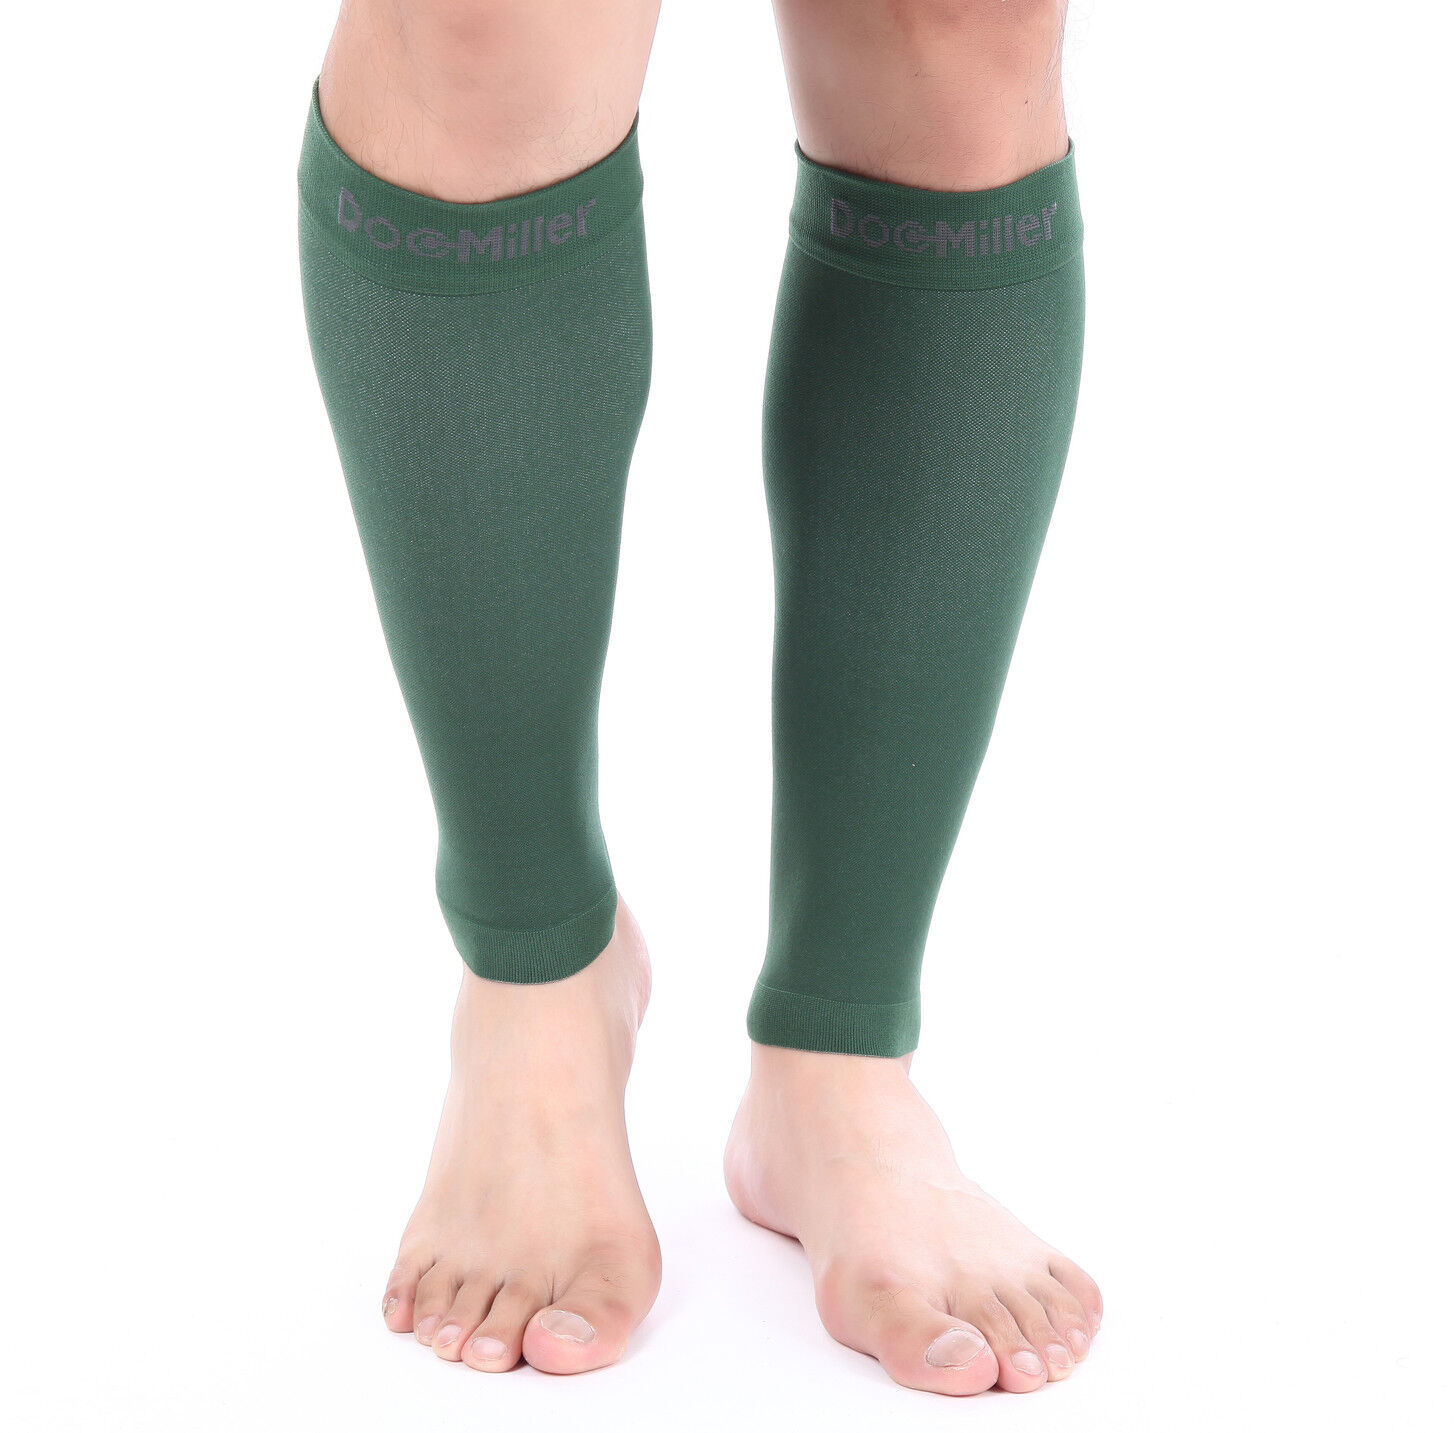 a56707456f Doc Miller Calf Compression Sleeve 1 Pair 20-30mmHg Recovery Varicose Veins  DARK GREEN